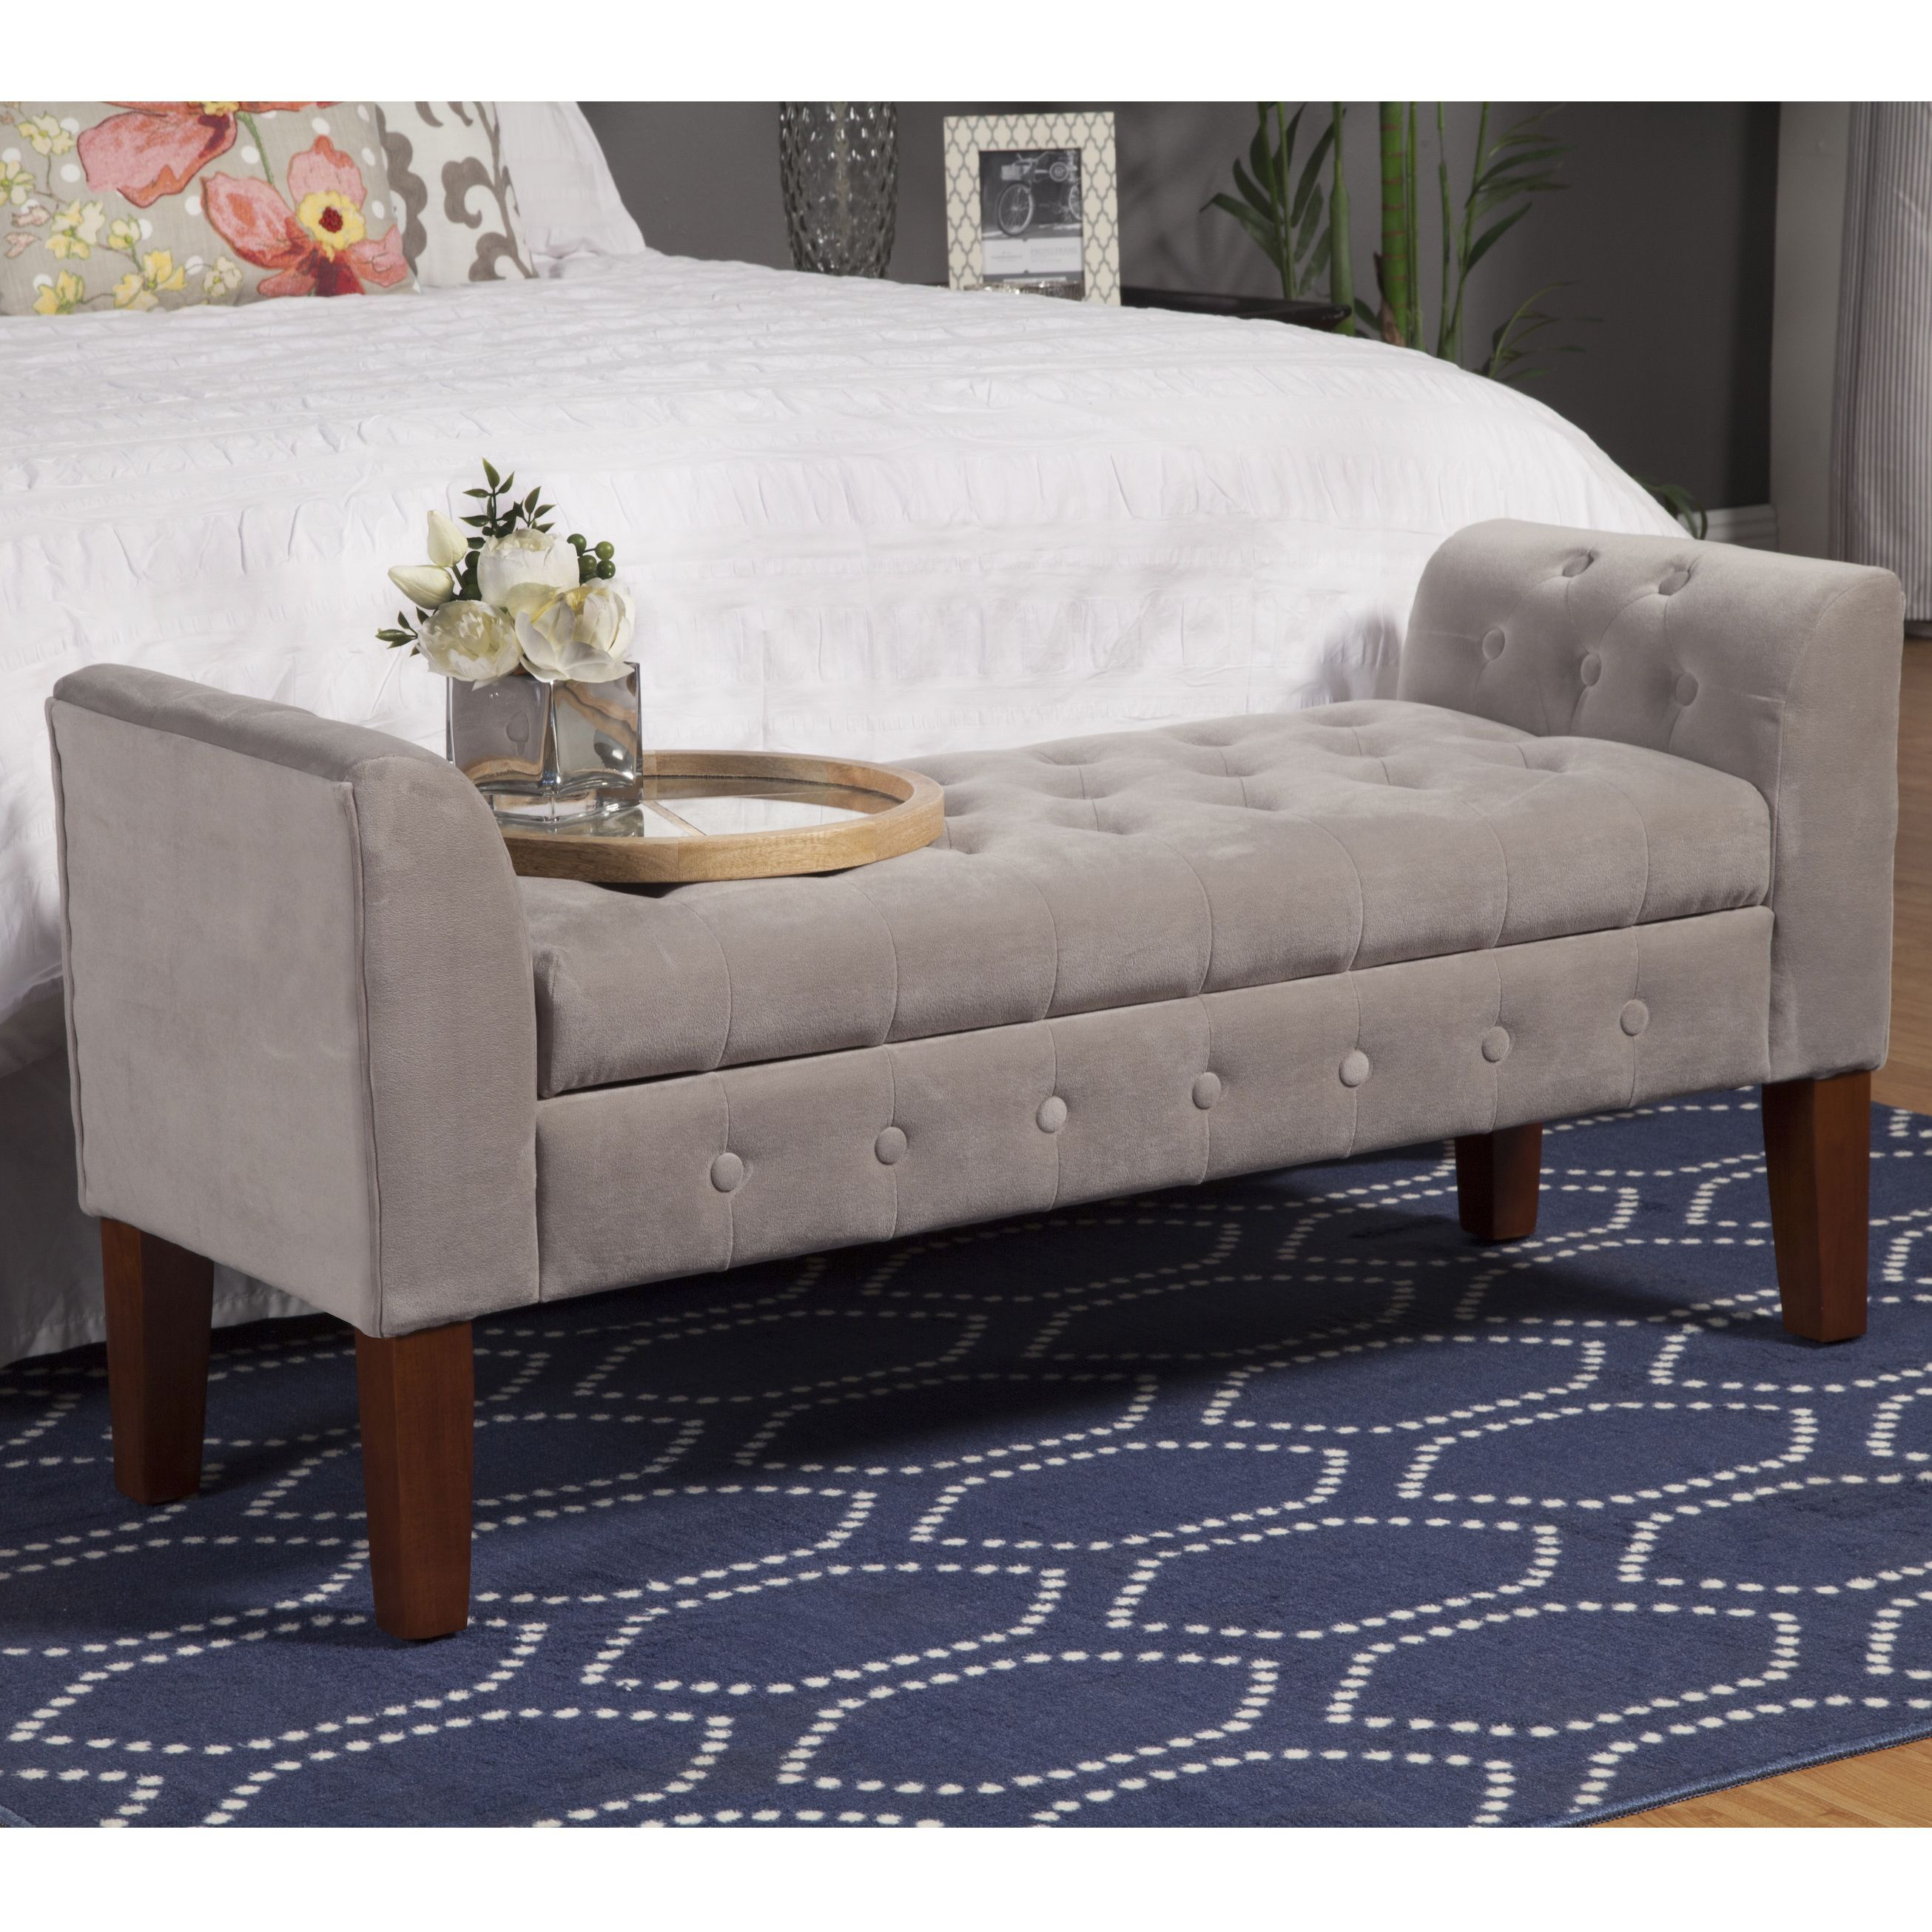 Kinfine USA Velvet Tufted Settee Storage Bench   Whatu0027s Velvety, Practical,  And Button Tufted All Over? The Kinfine USA Velvet Tufted Settee Storage  Bench ...